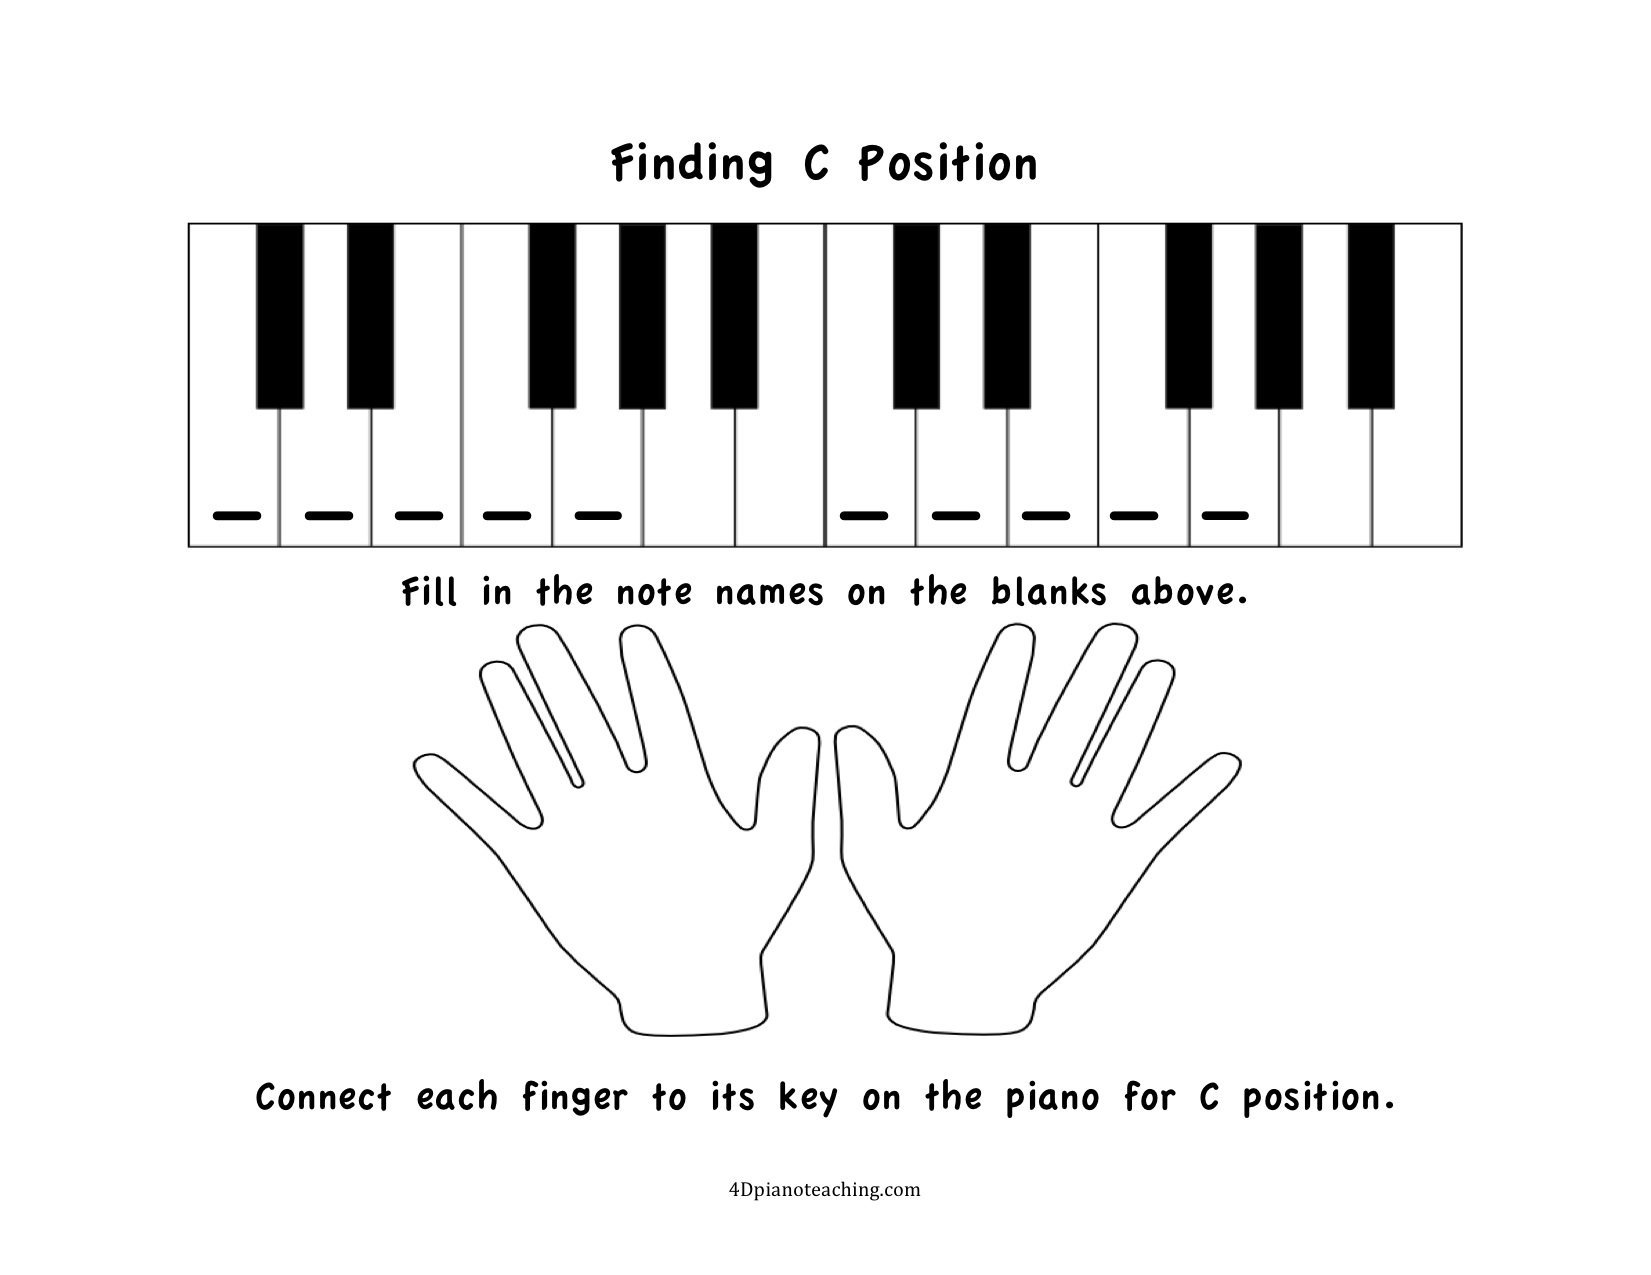 Worksheets Piano Worksheets free printables c position worksheets 4dpianoteaching com worksheets